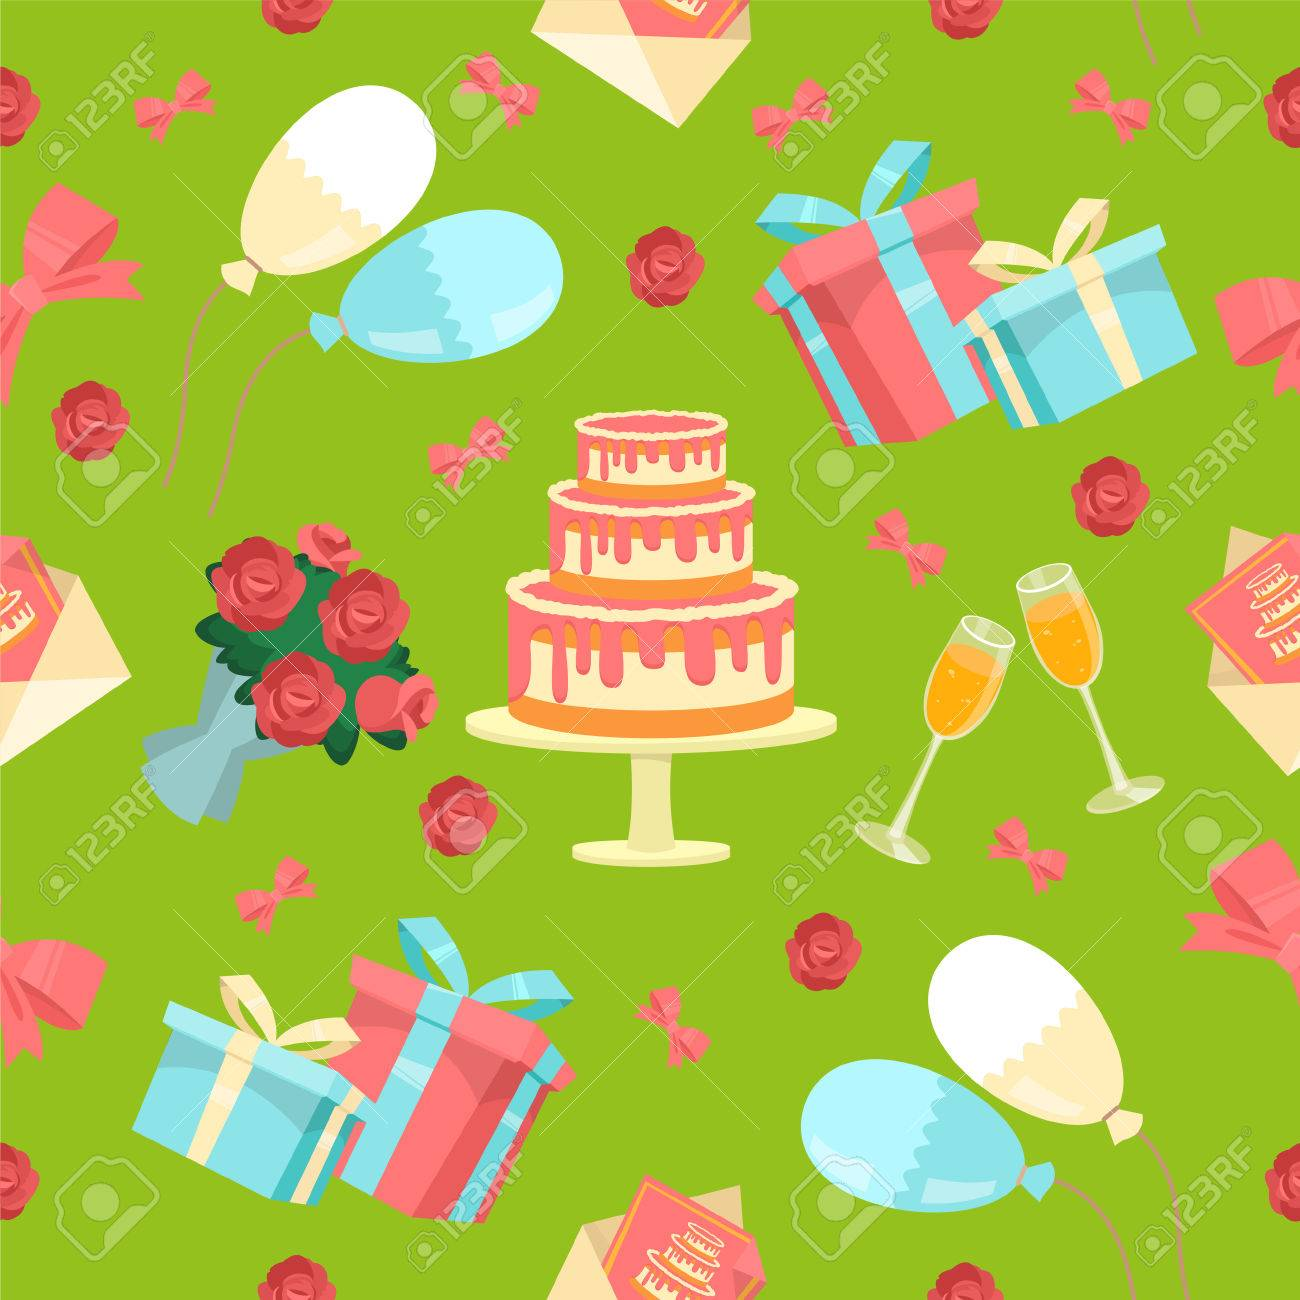 Happy Birthday Seamless Pattern With Cake Flowers And Balloons